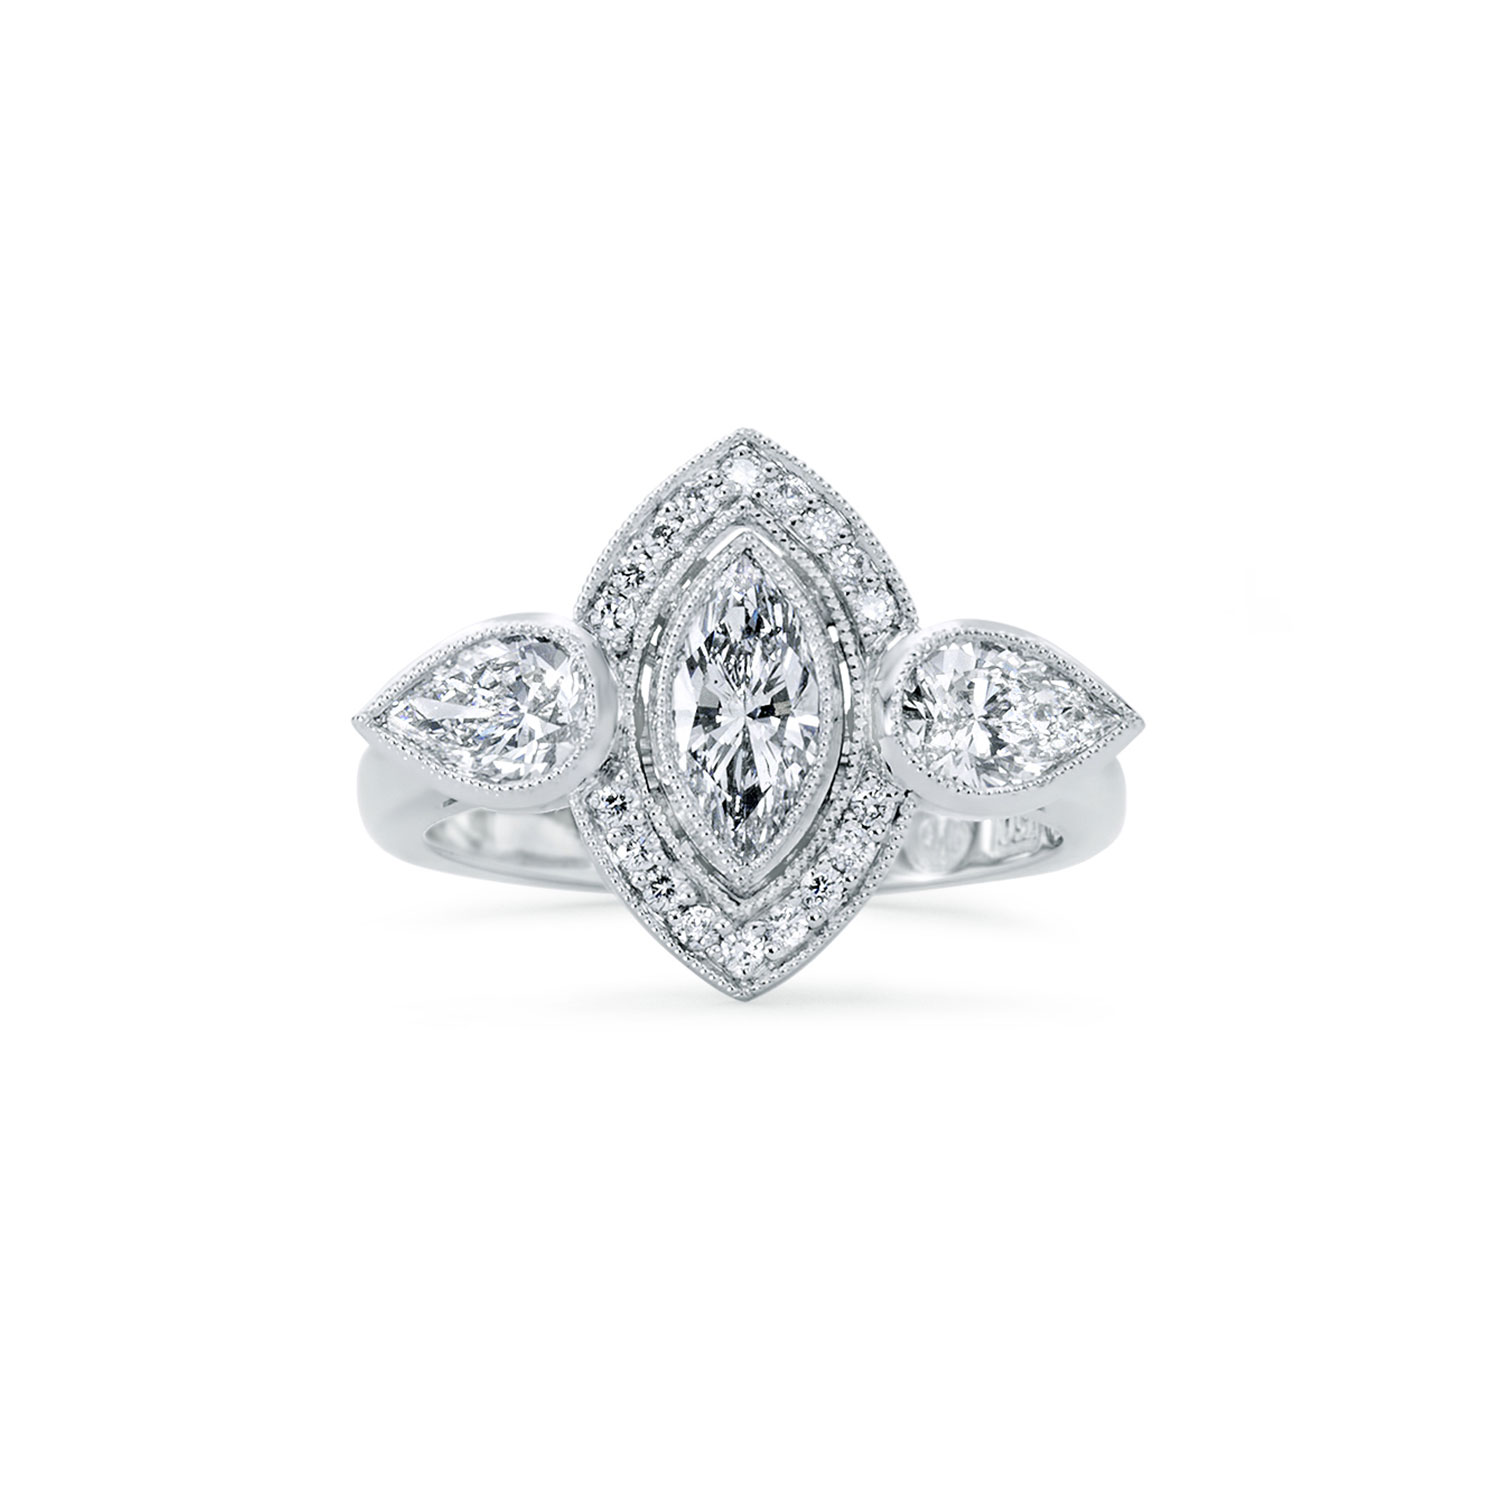 An Art Deco Marquise Diamond Engagement Ring